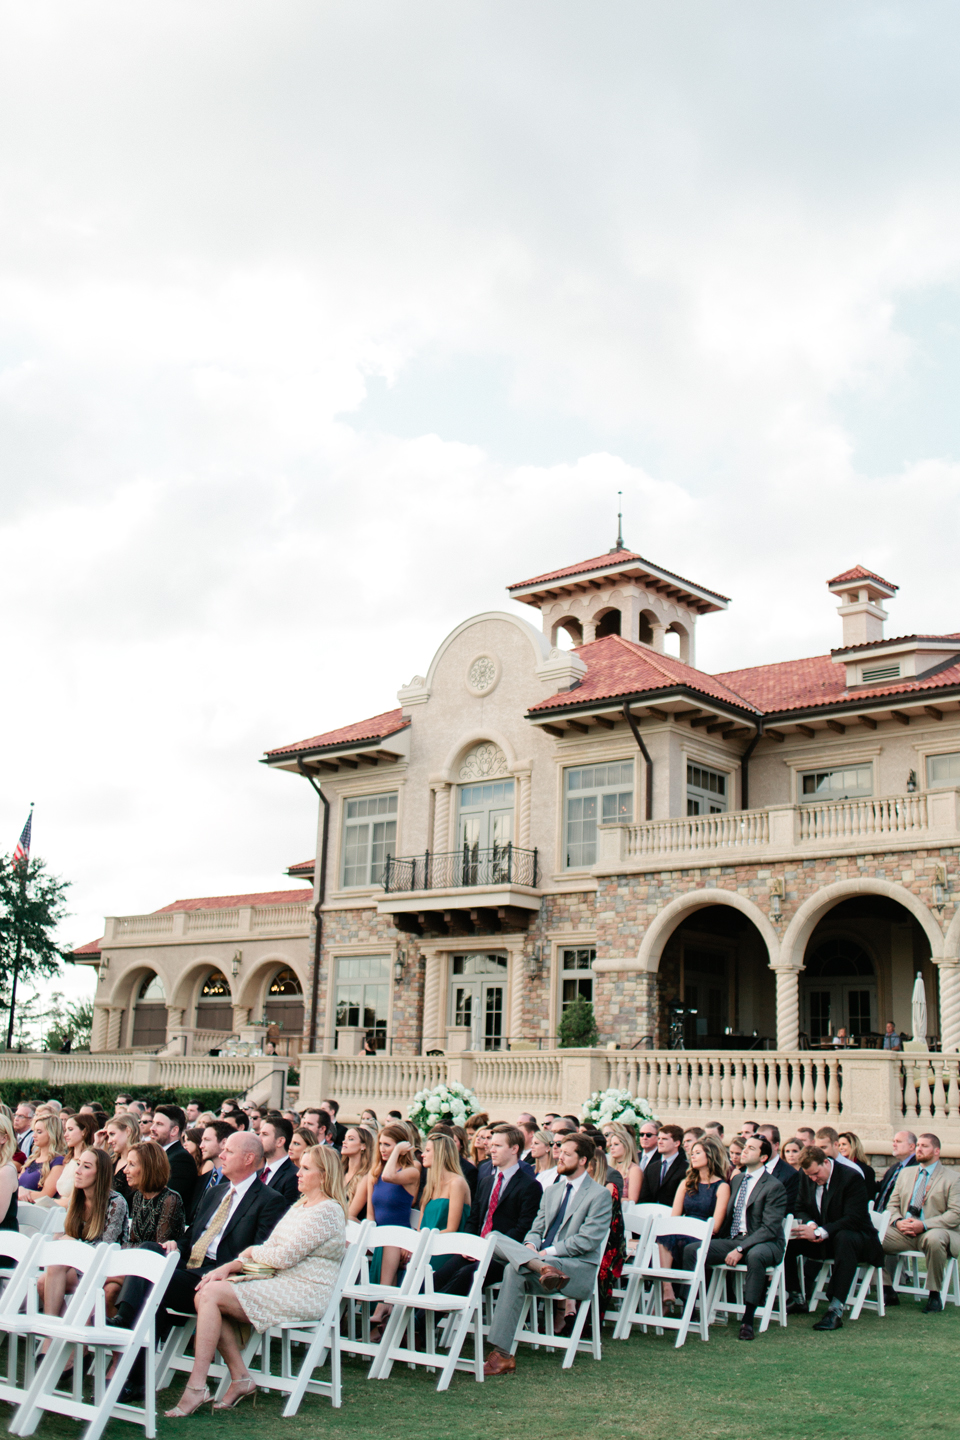 Image of a wedding ceremony held at Ponte Vedra TPC Sawgrass in Florida